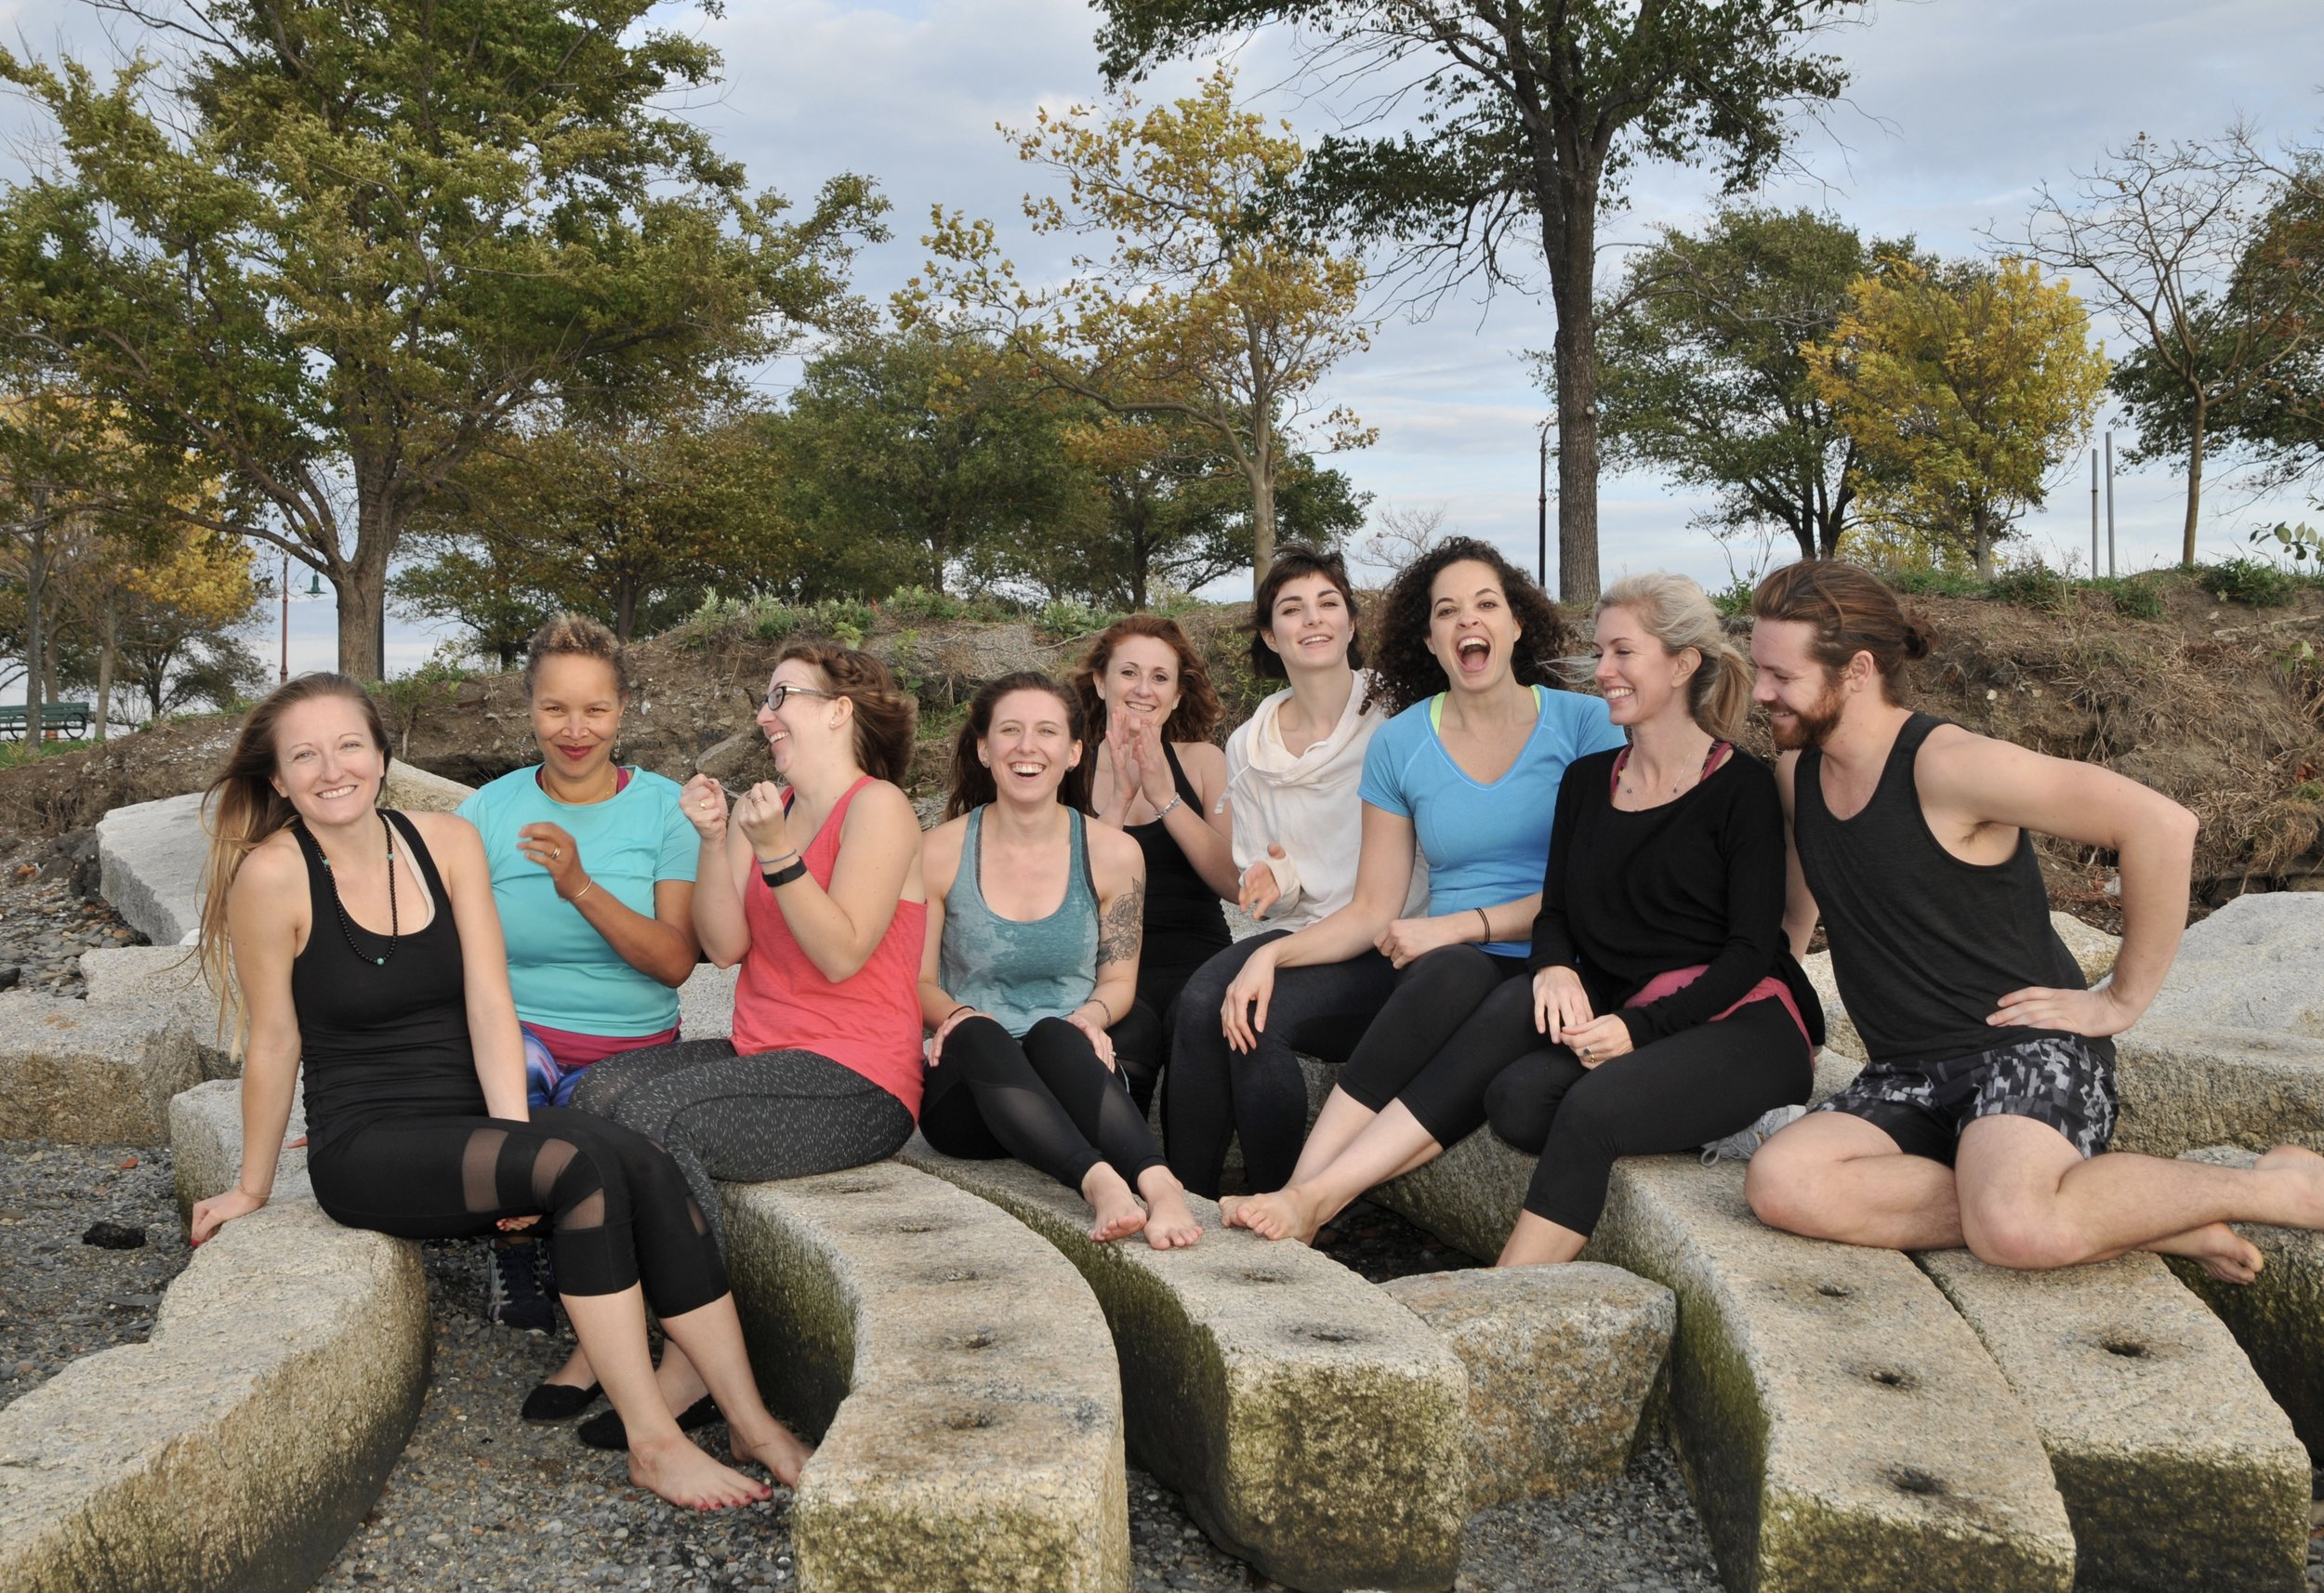 Our graduating class after our beautiful photo shoot at Castle Island in Boston